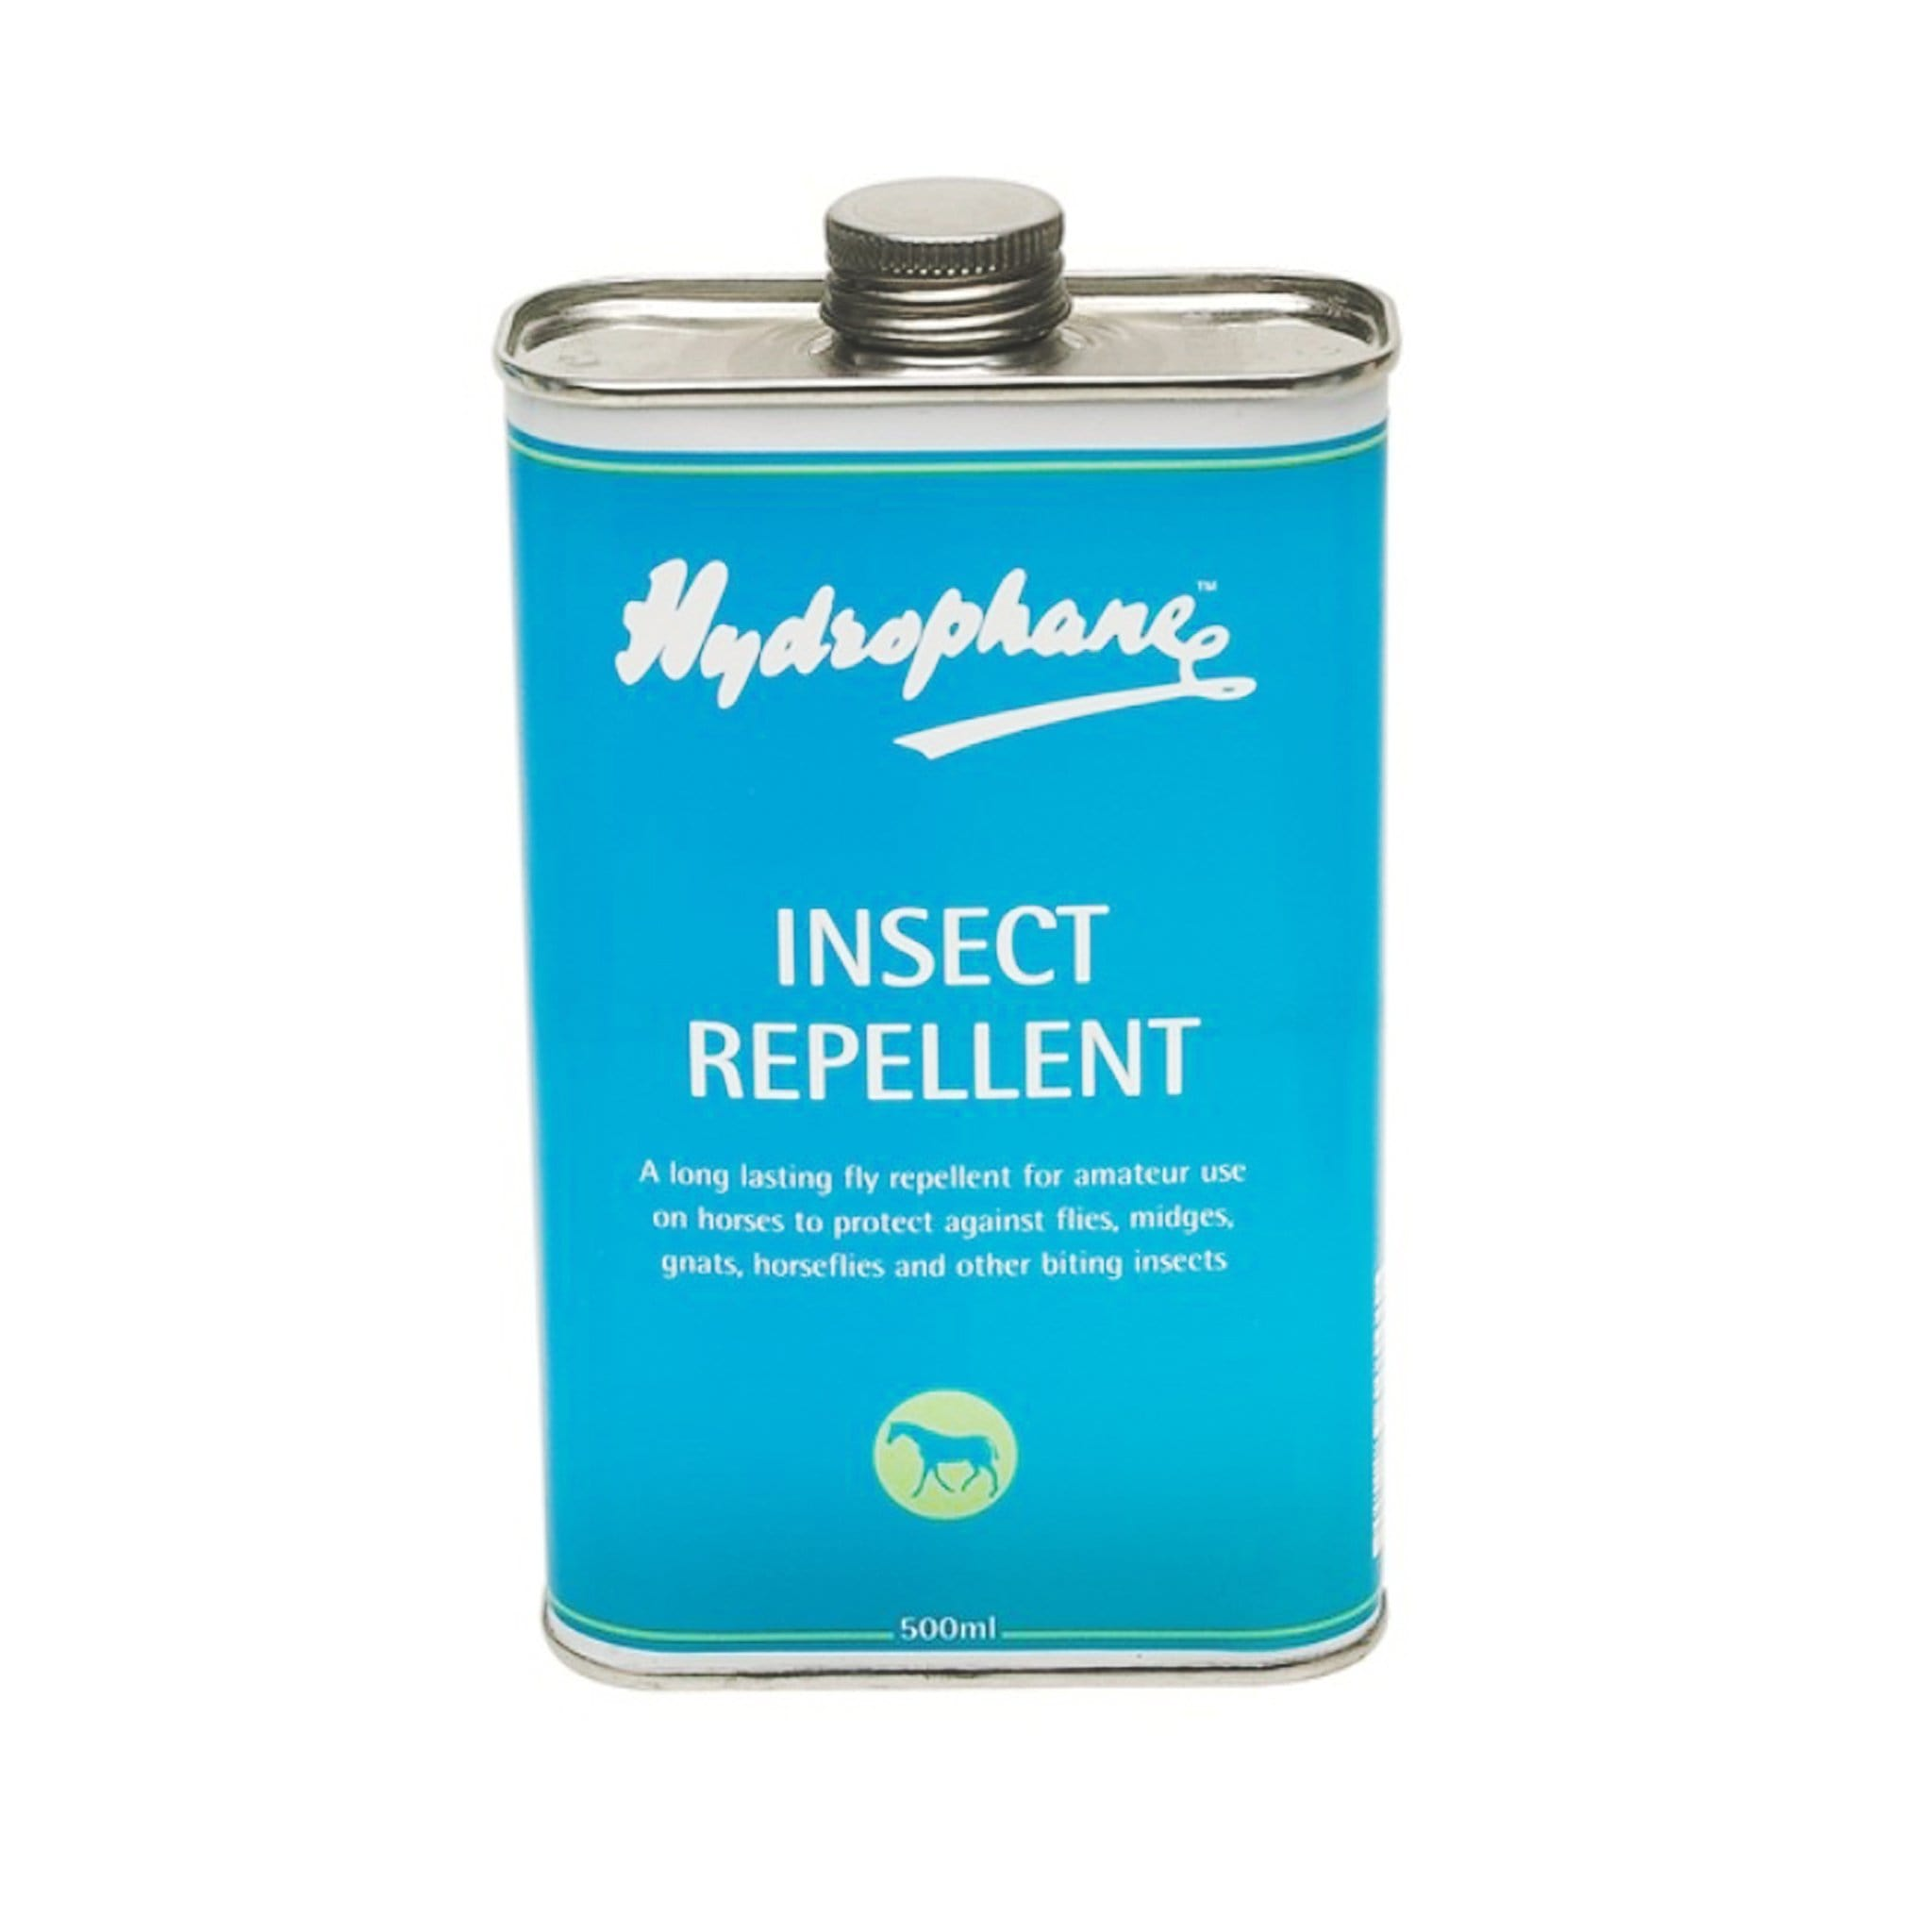 Hydrophane Insect Repellent 5469